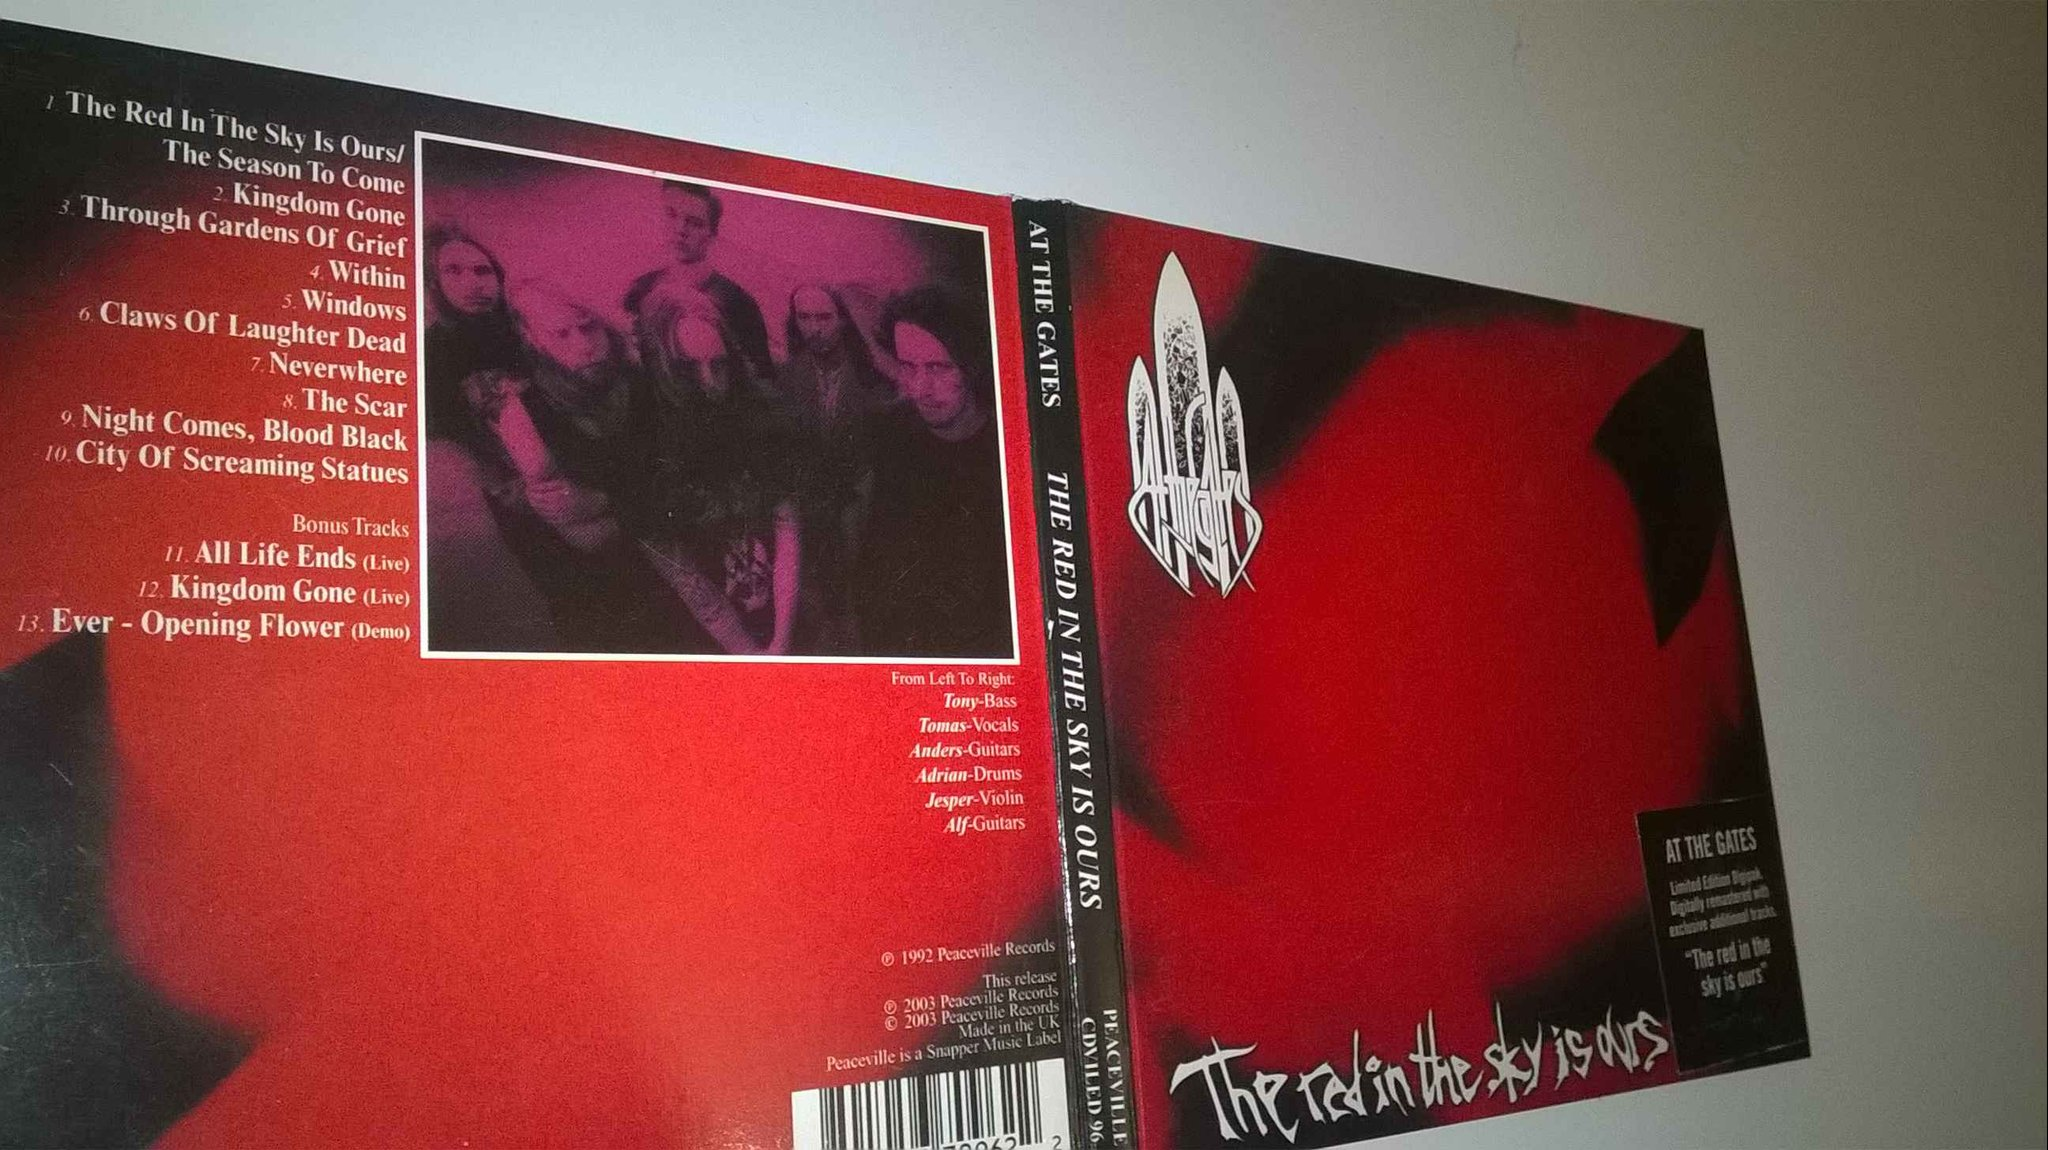 At The Gates - The Red In The Sky Is Ours, CD